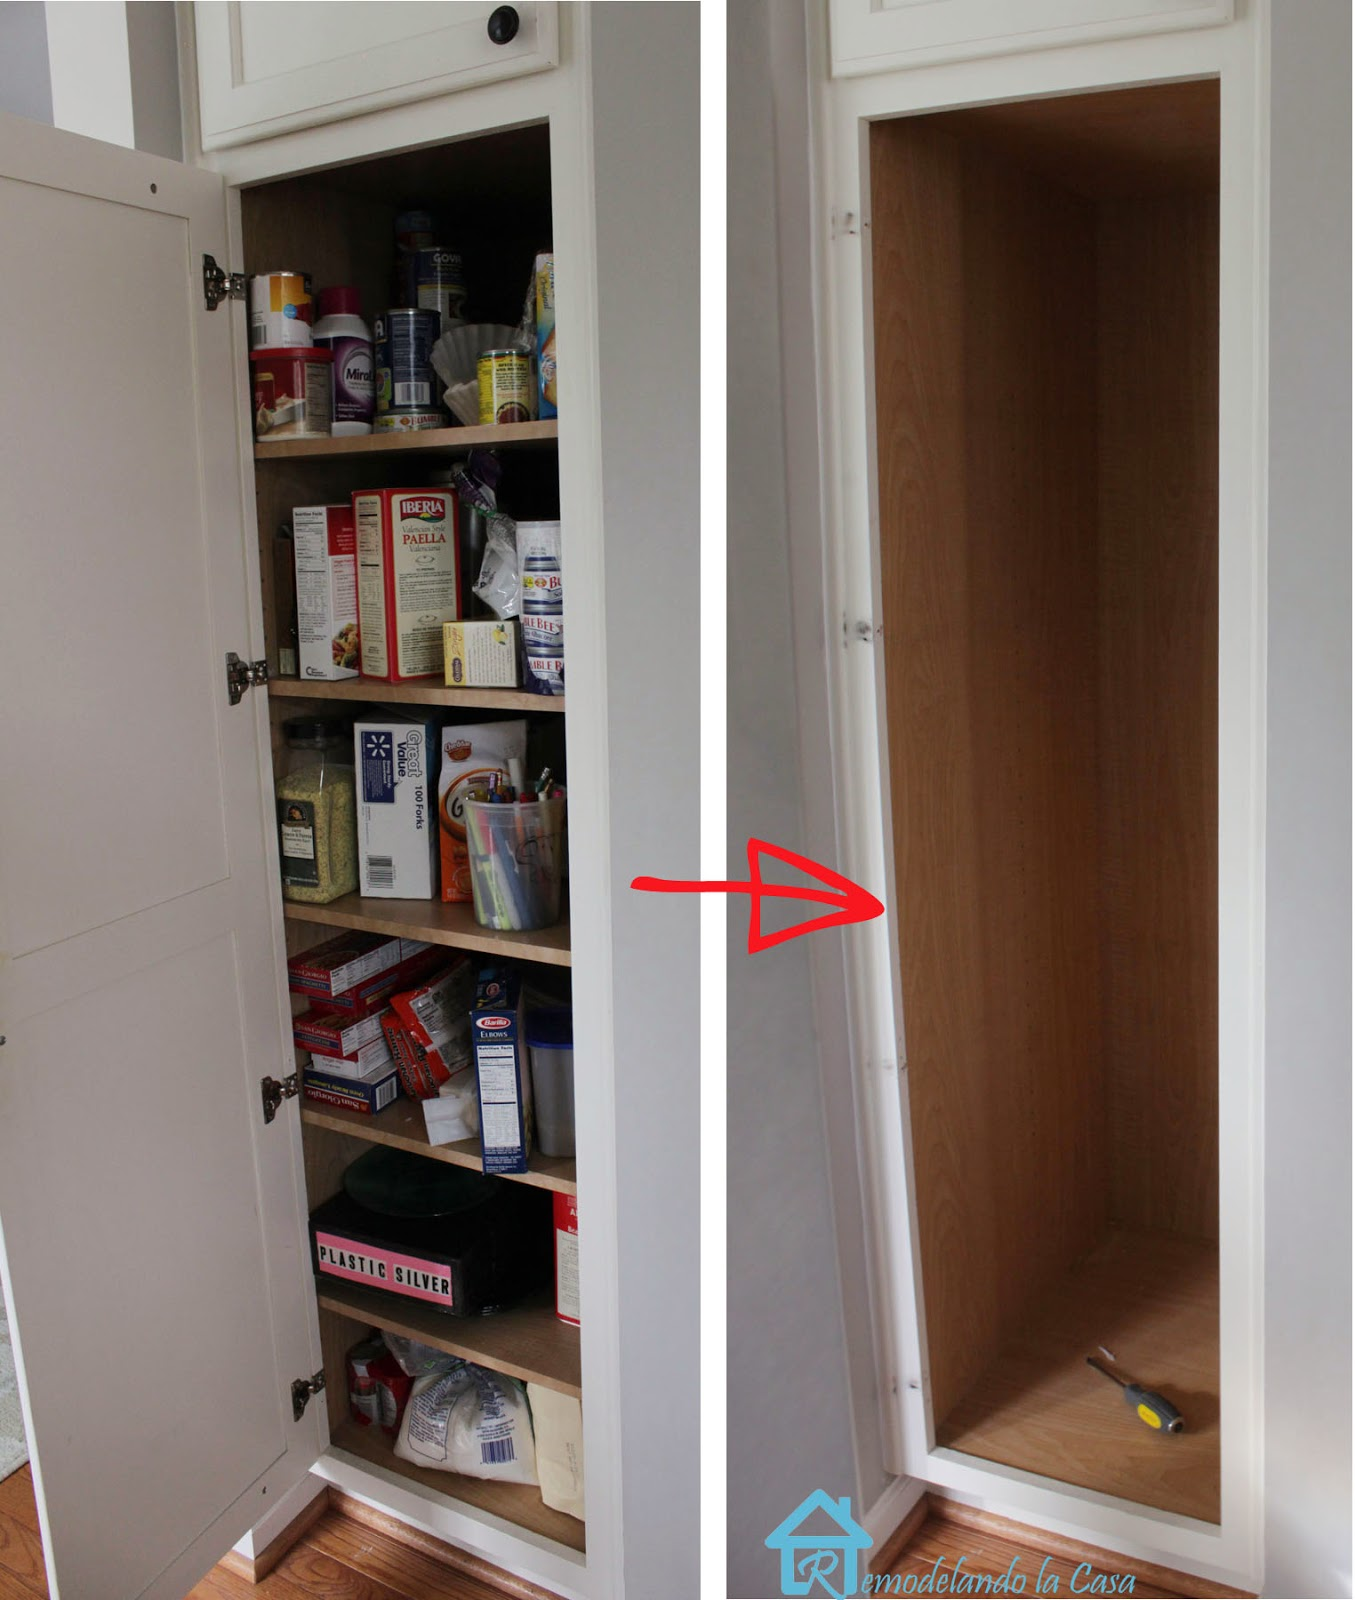 pantry cabinet is emptied for slide installation remodelando la casa  kitchen organization   pull out shelves in pantry  rh   remodelandolacasa com